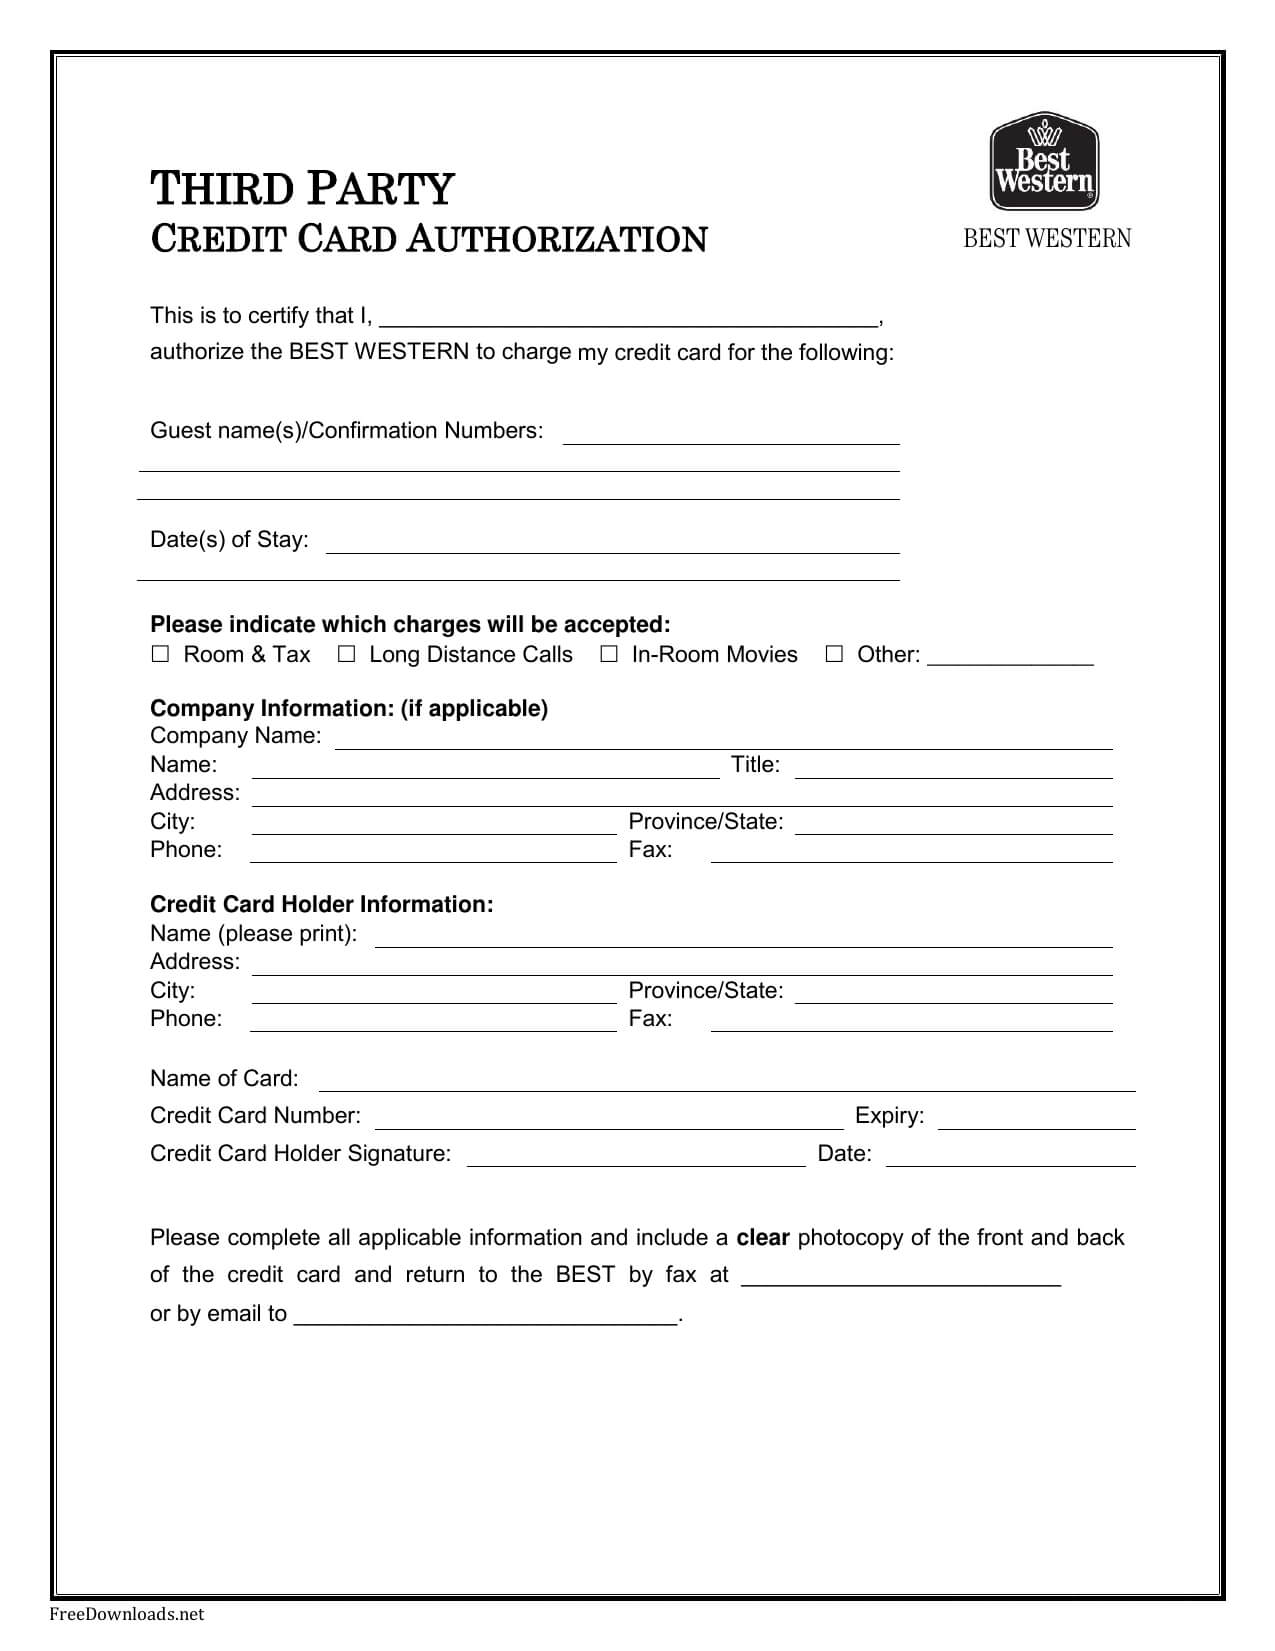 Credit Card Authorization Forms – Cnbam throughout Authorization To Charge Credit Card Template